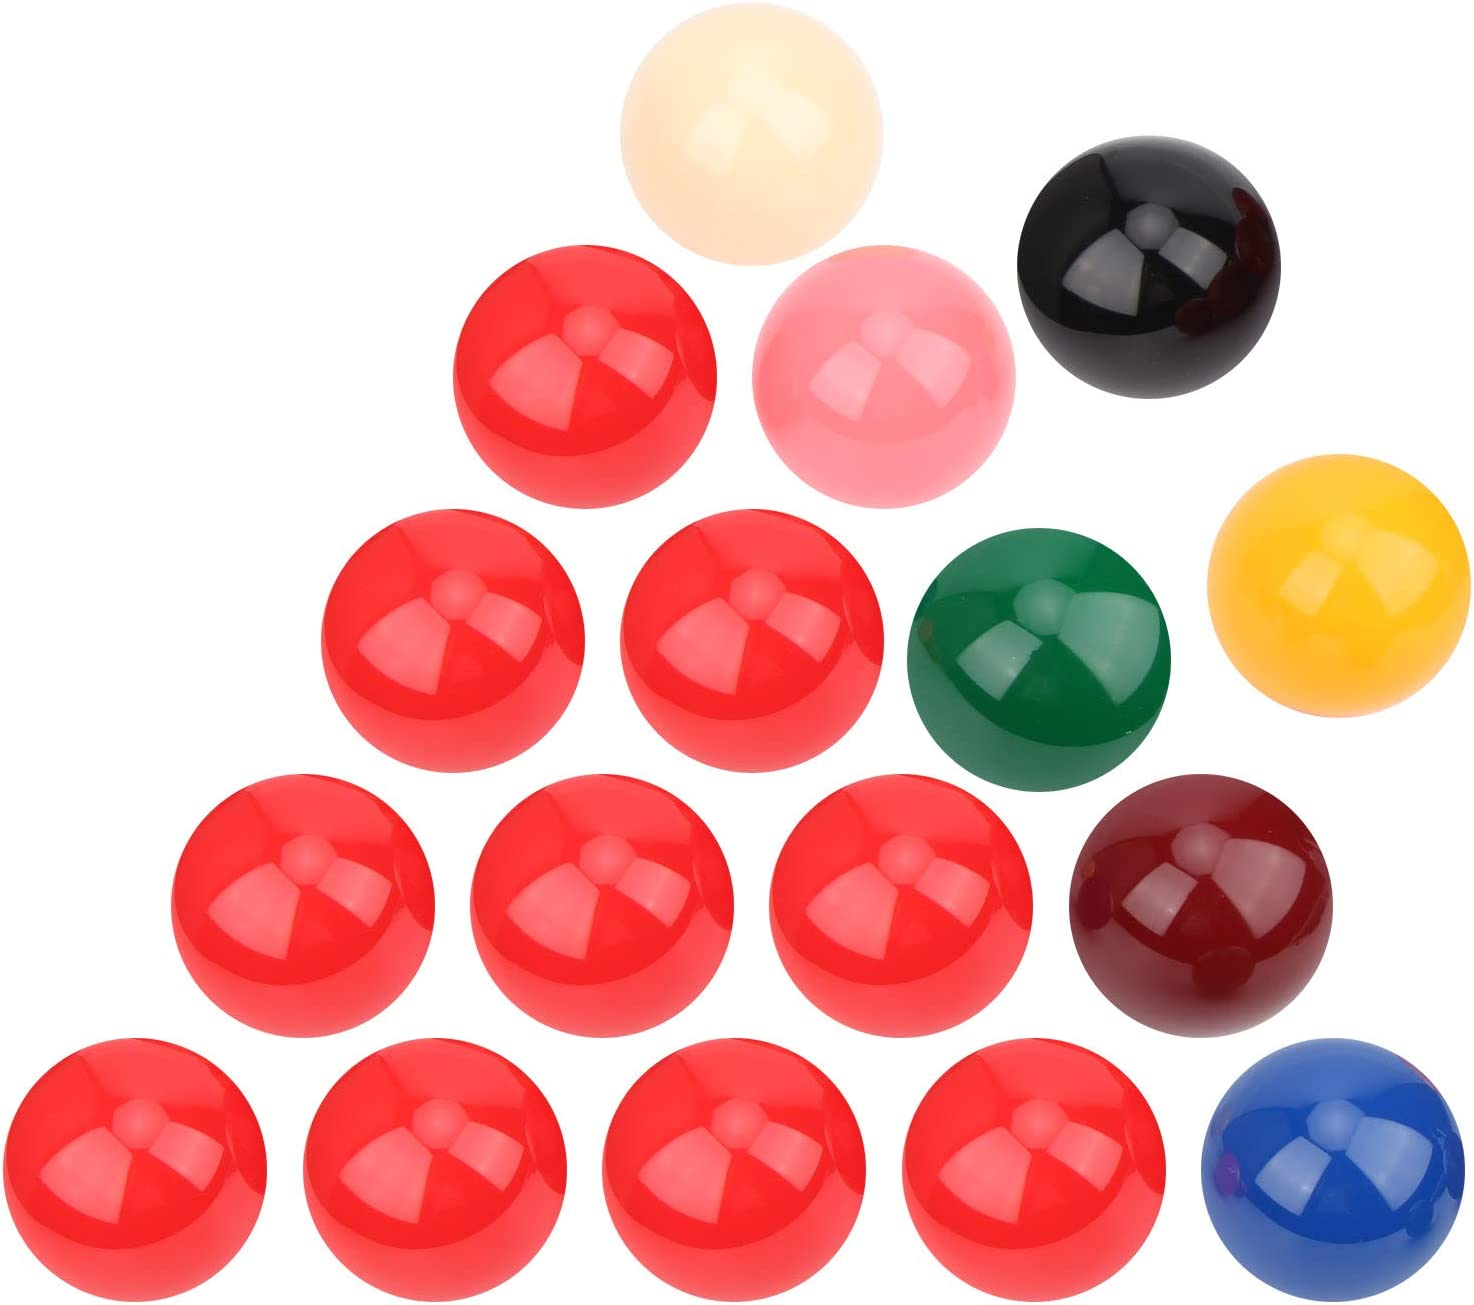 Vbestlife Billiard Ball Kit Resin 57.2mm Boxed Shipping included Recommendation 1 Smooth Durable